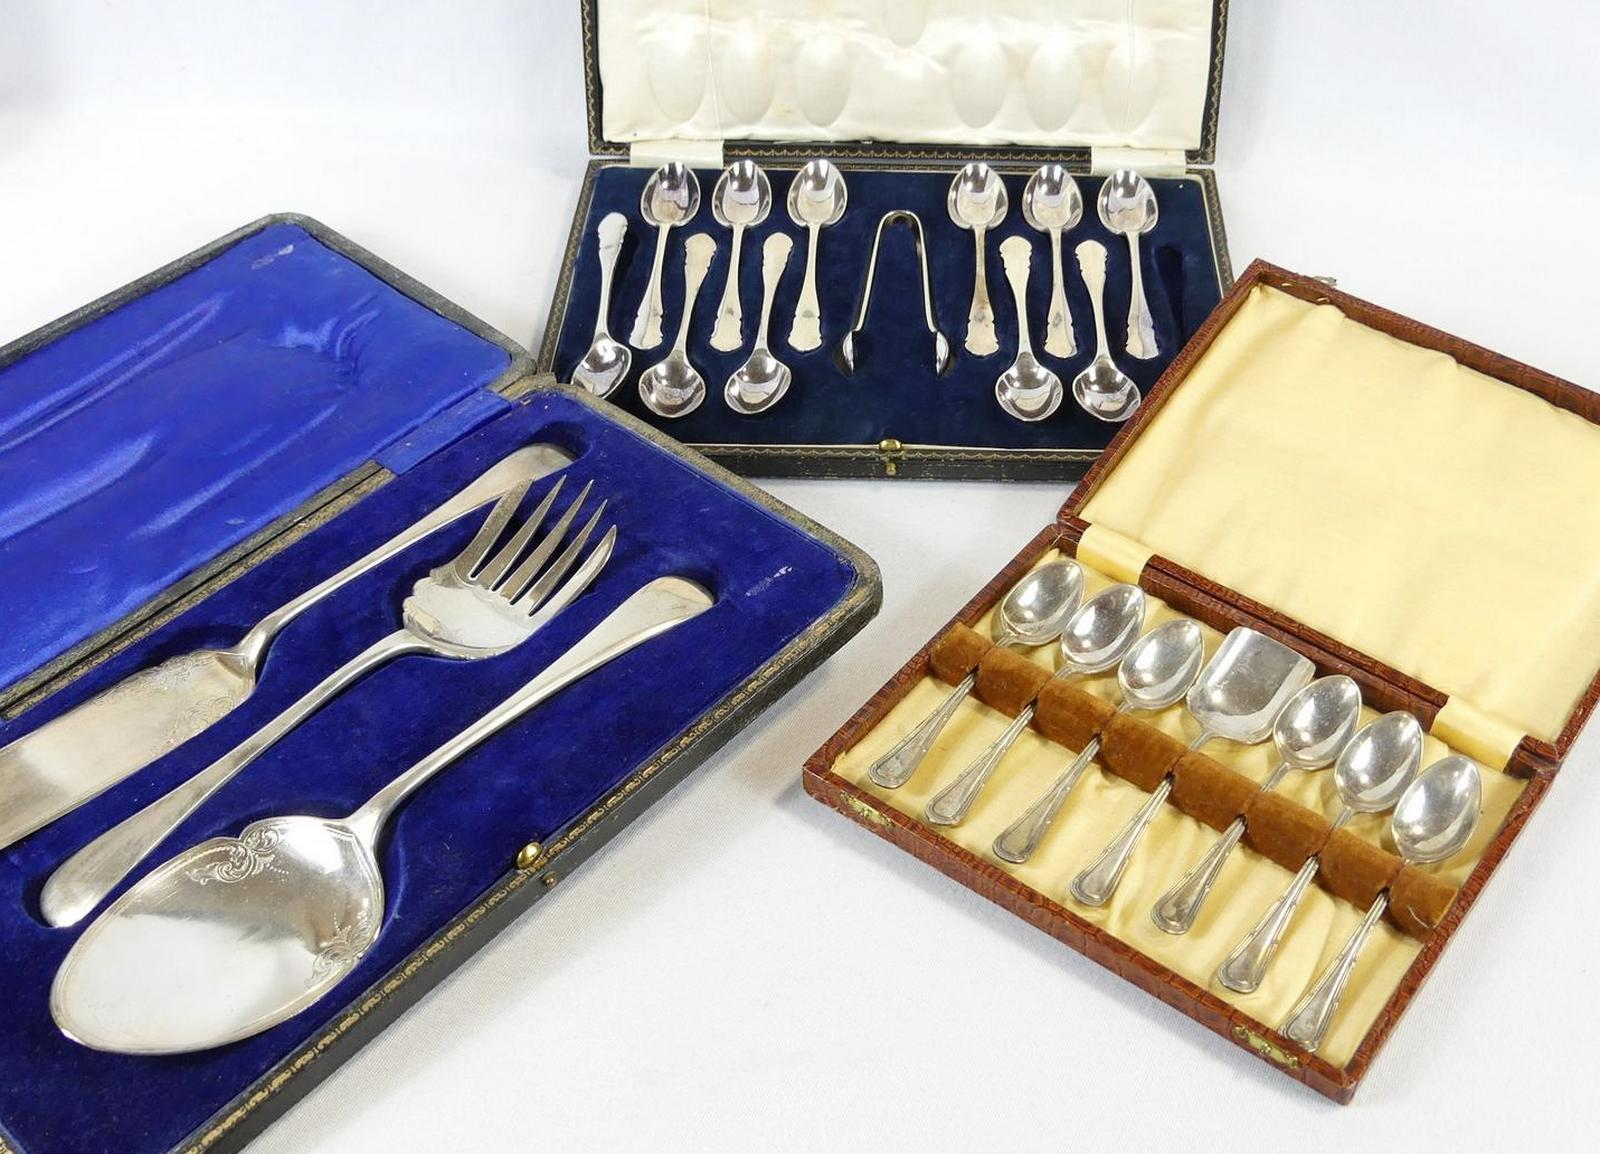 THREE CASES OF CUTLERY